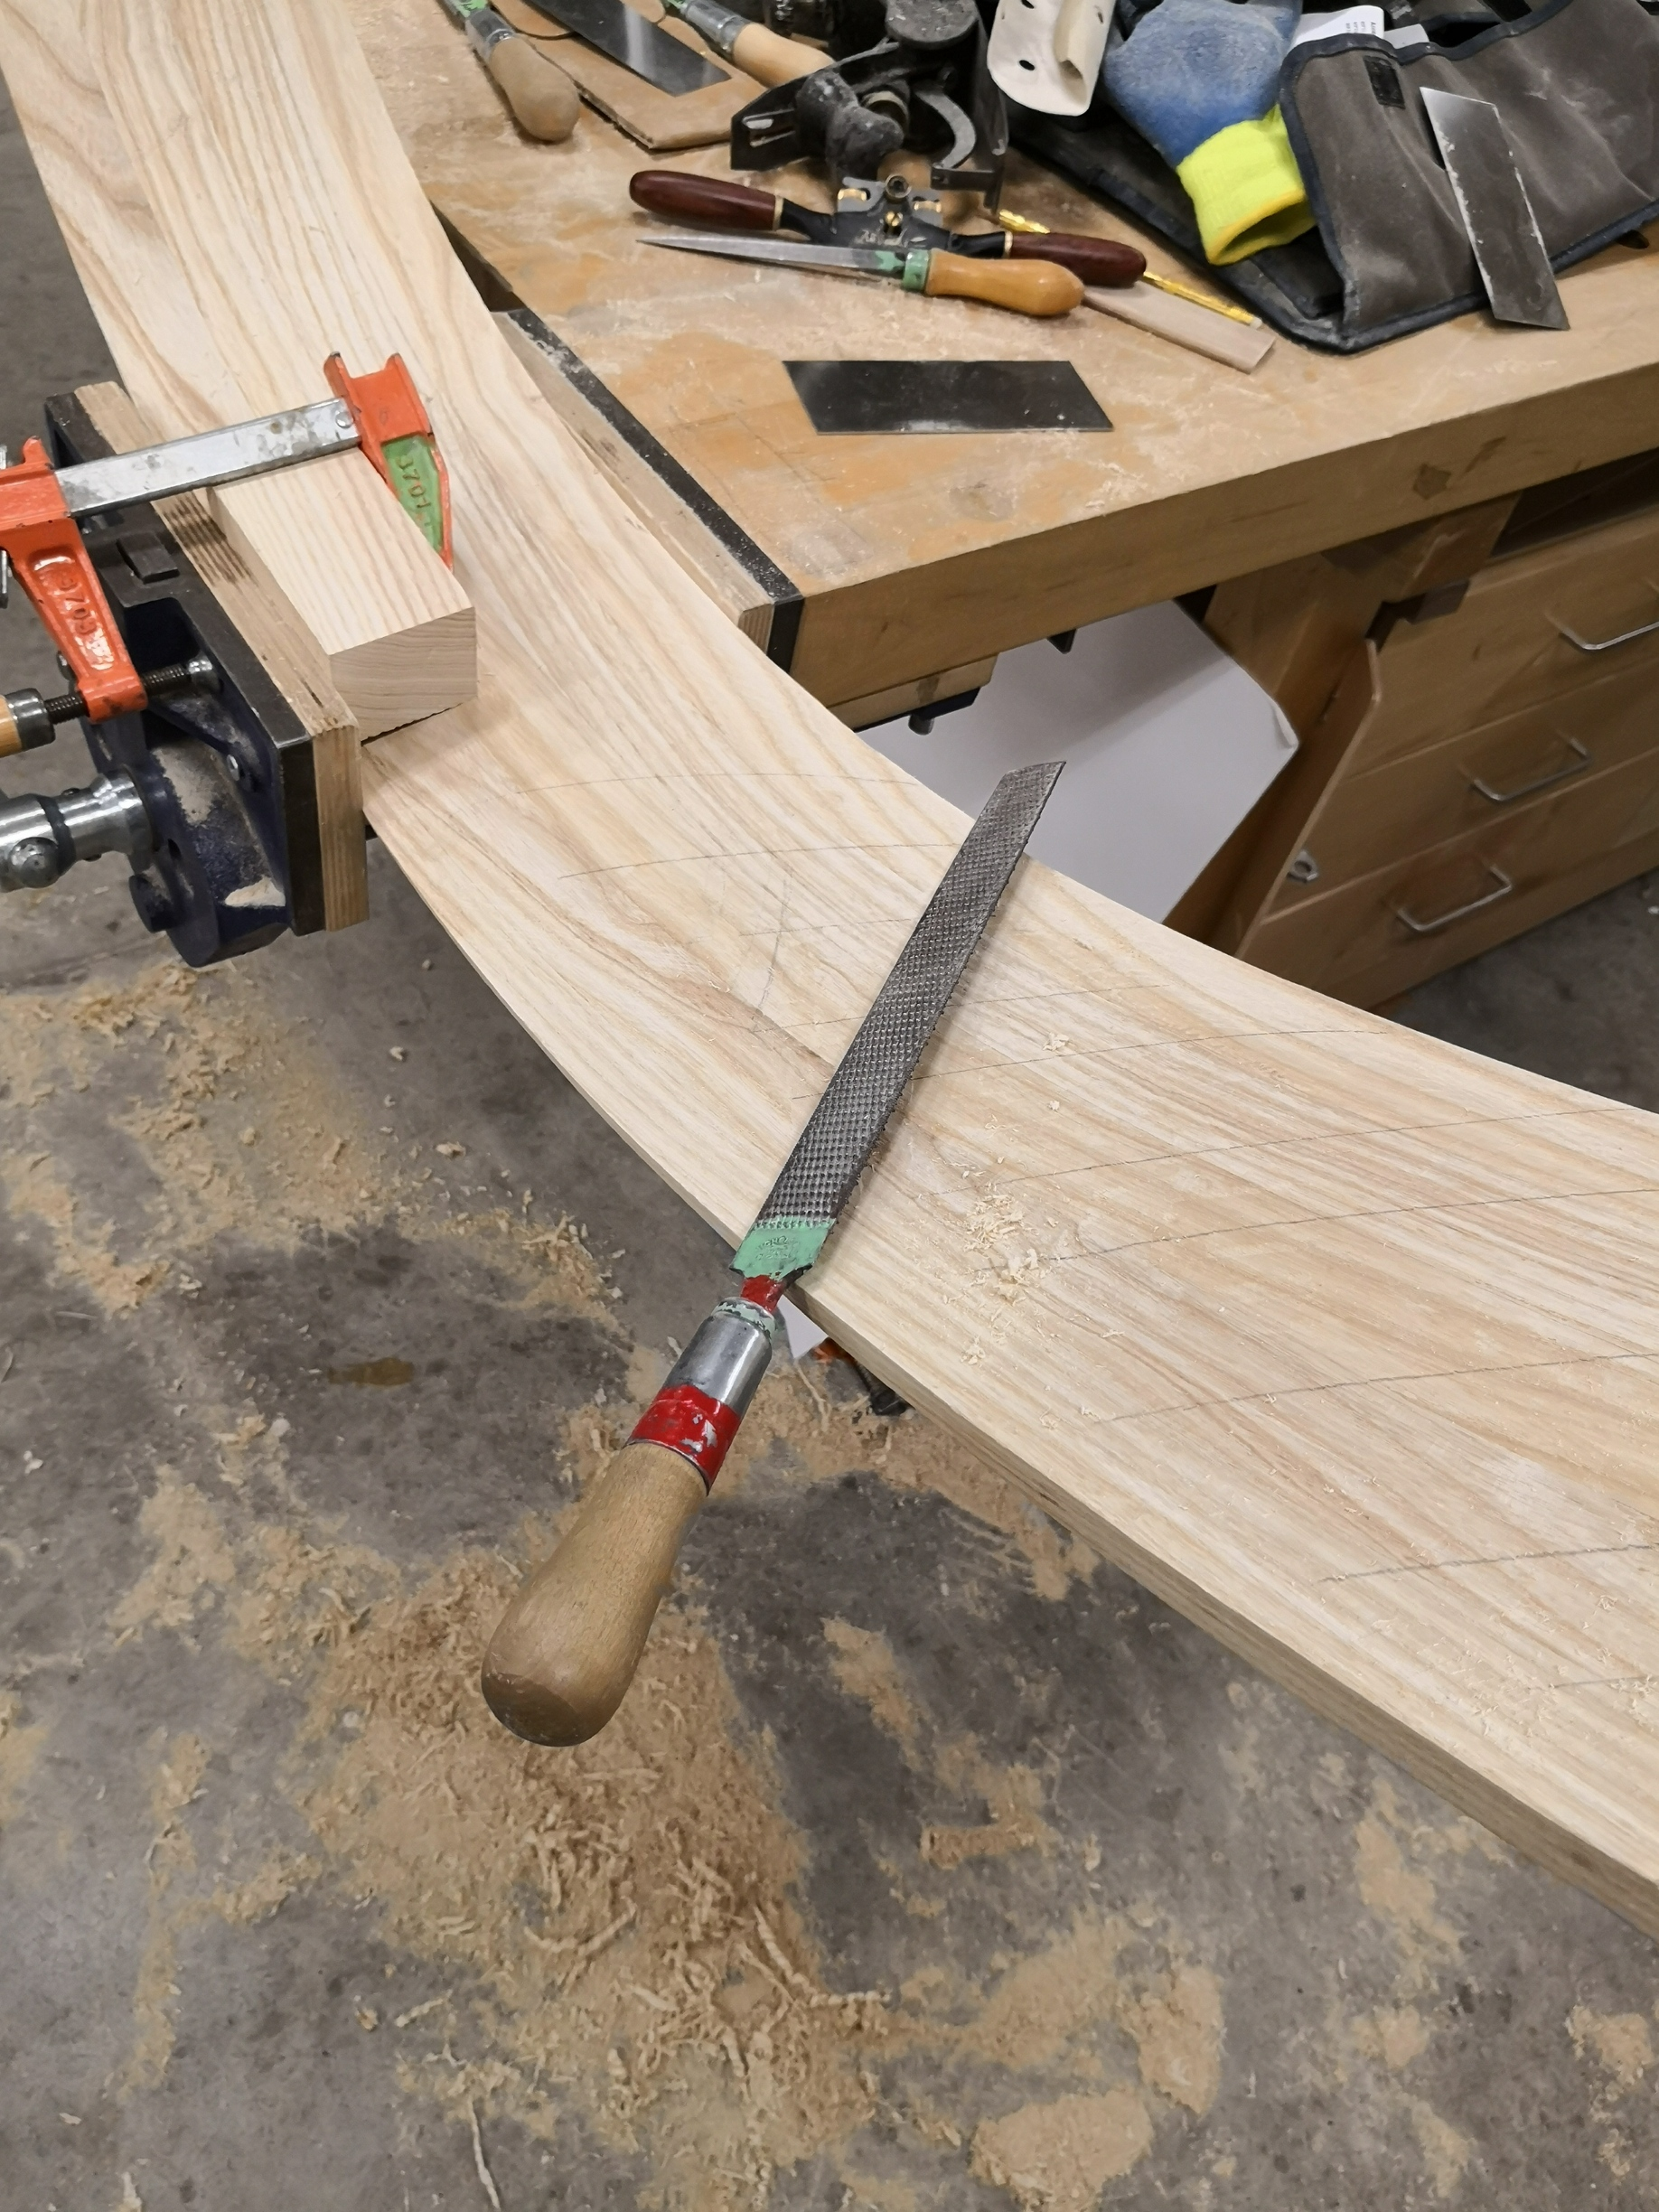 Shaping inside of the head rest with rasp